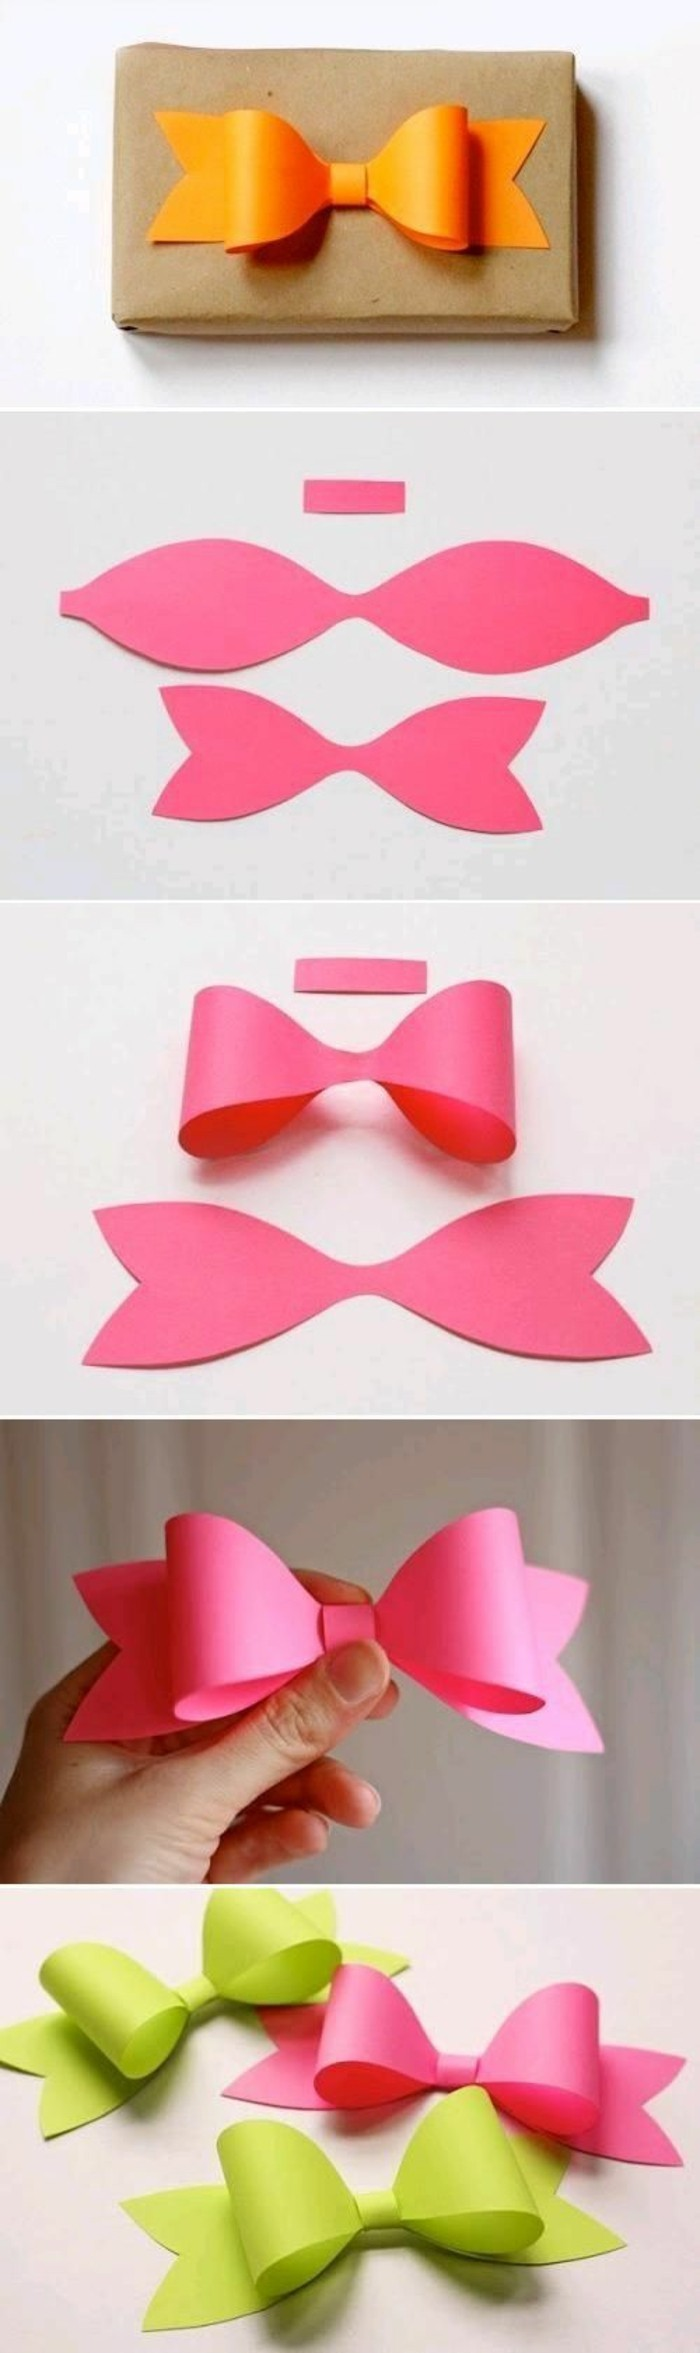 pink orange and green paper bow, step by step, diy tutorial, cute gift ideas for boyfriend, brown wrapping paper